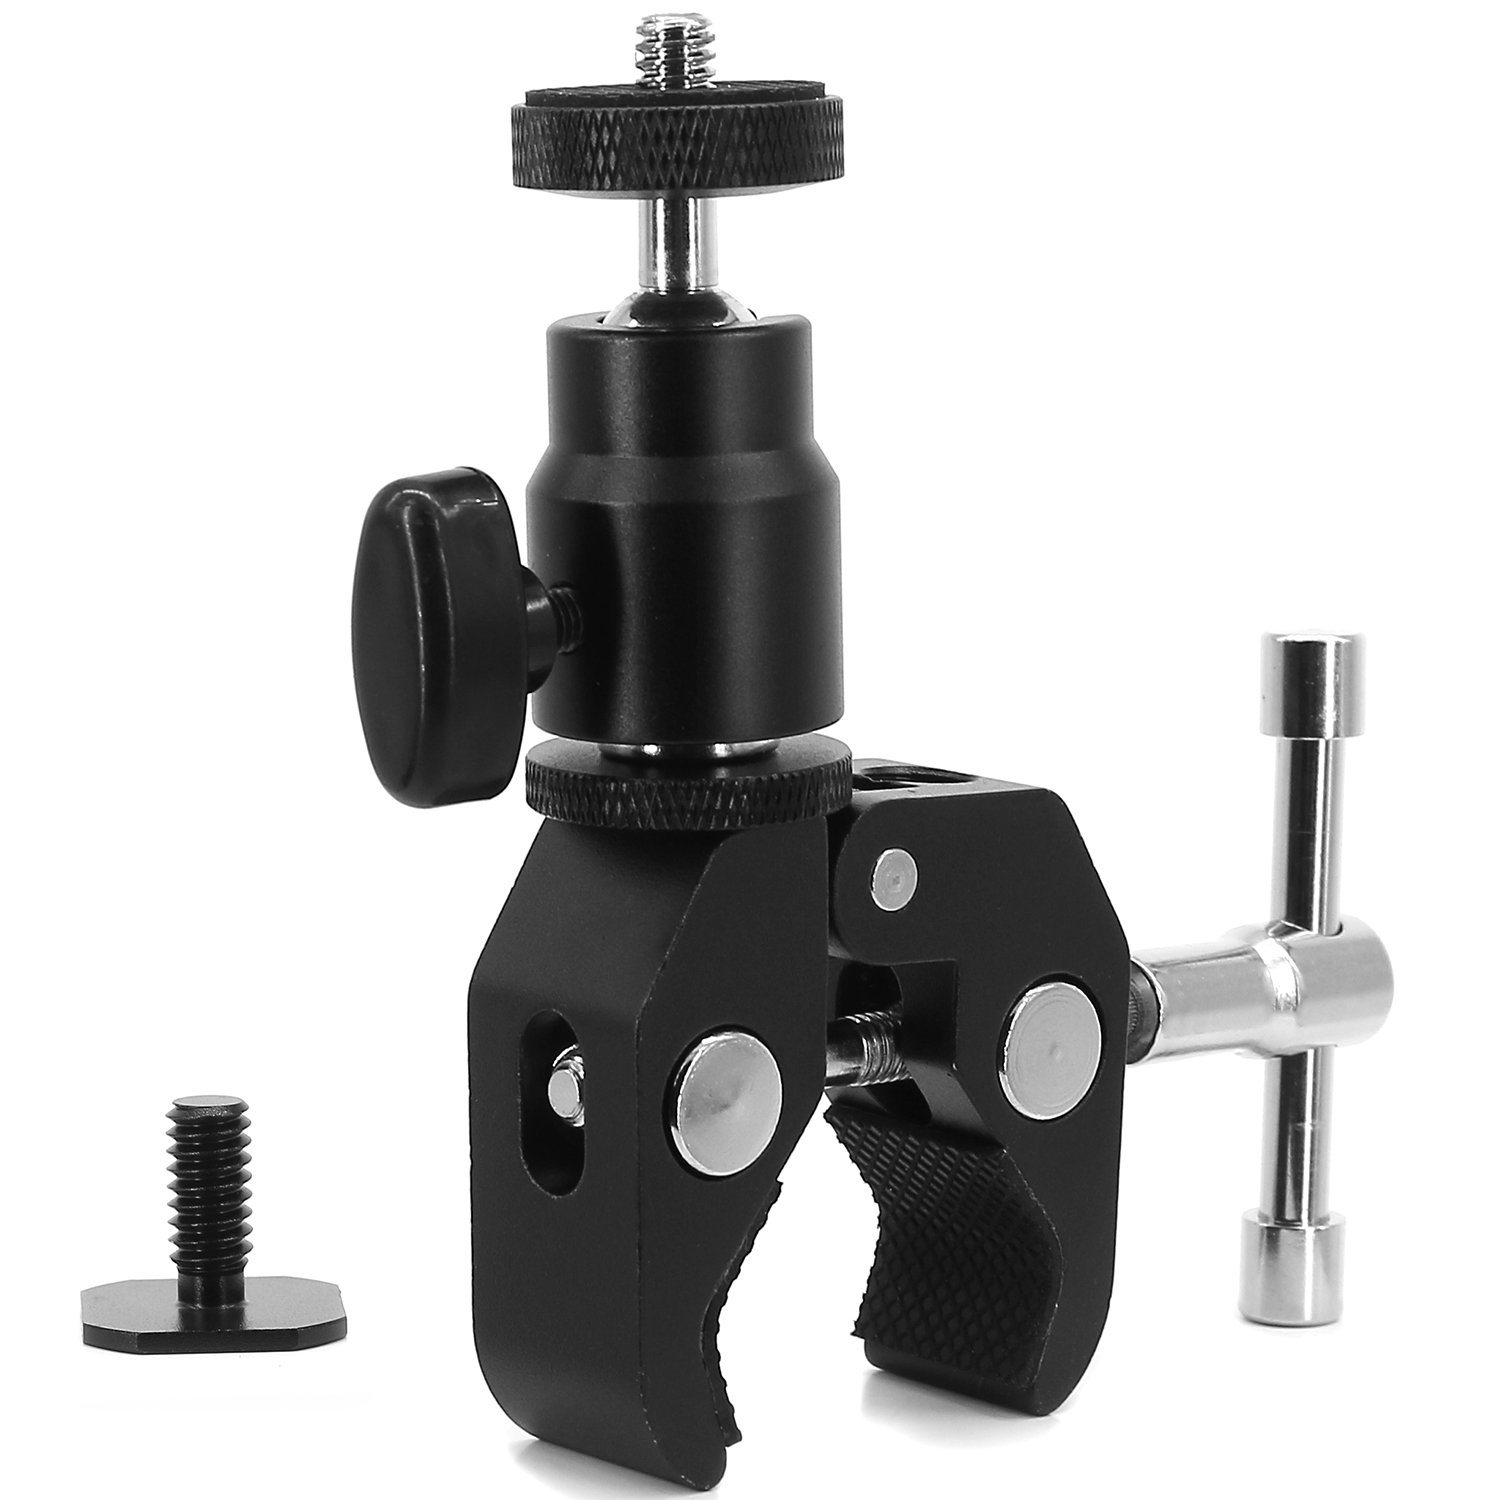 RivenAn Multi-Function Mini Ball Head with Lock and Hot Shoe Adapter Camera Cradle 1//4 Mount Adapter to Video Camcorder Hot Shoe for LCD Monitors